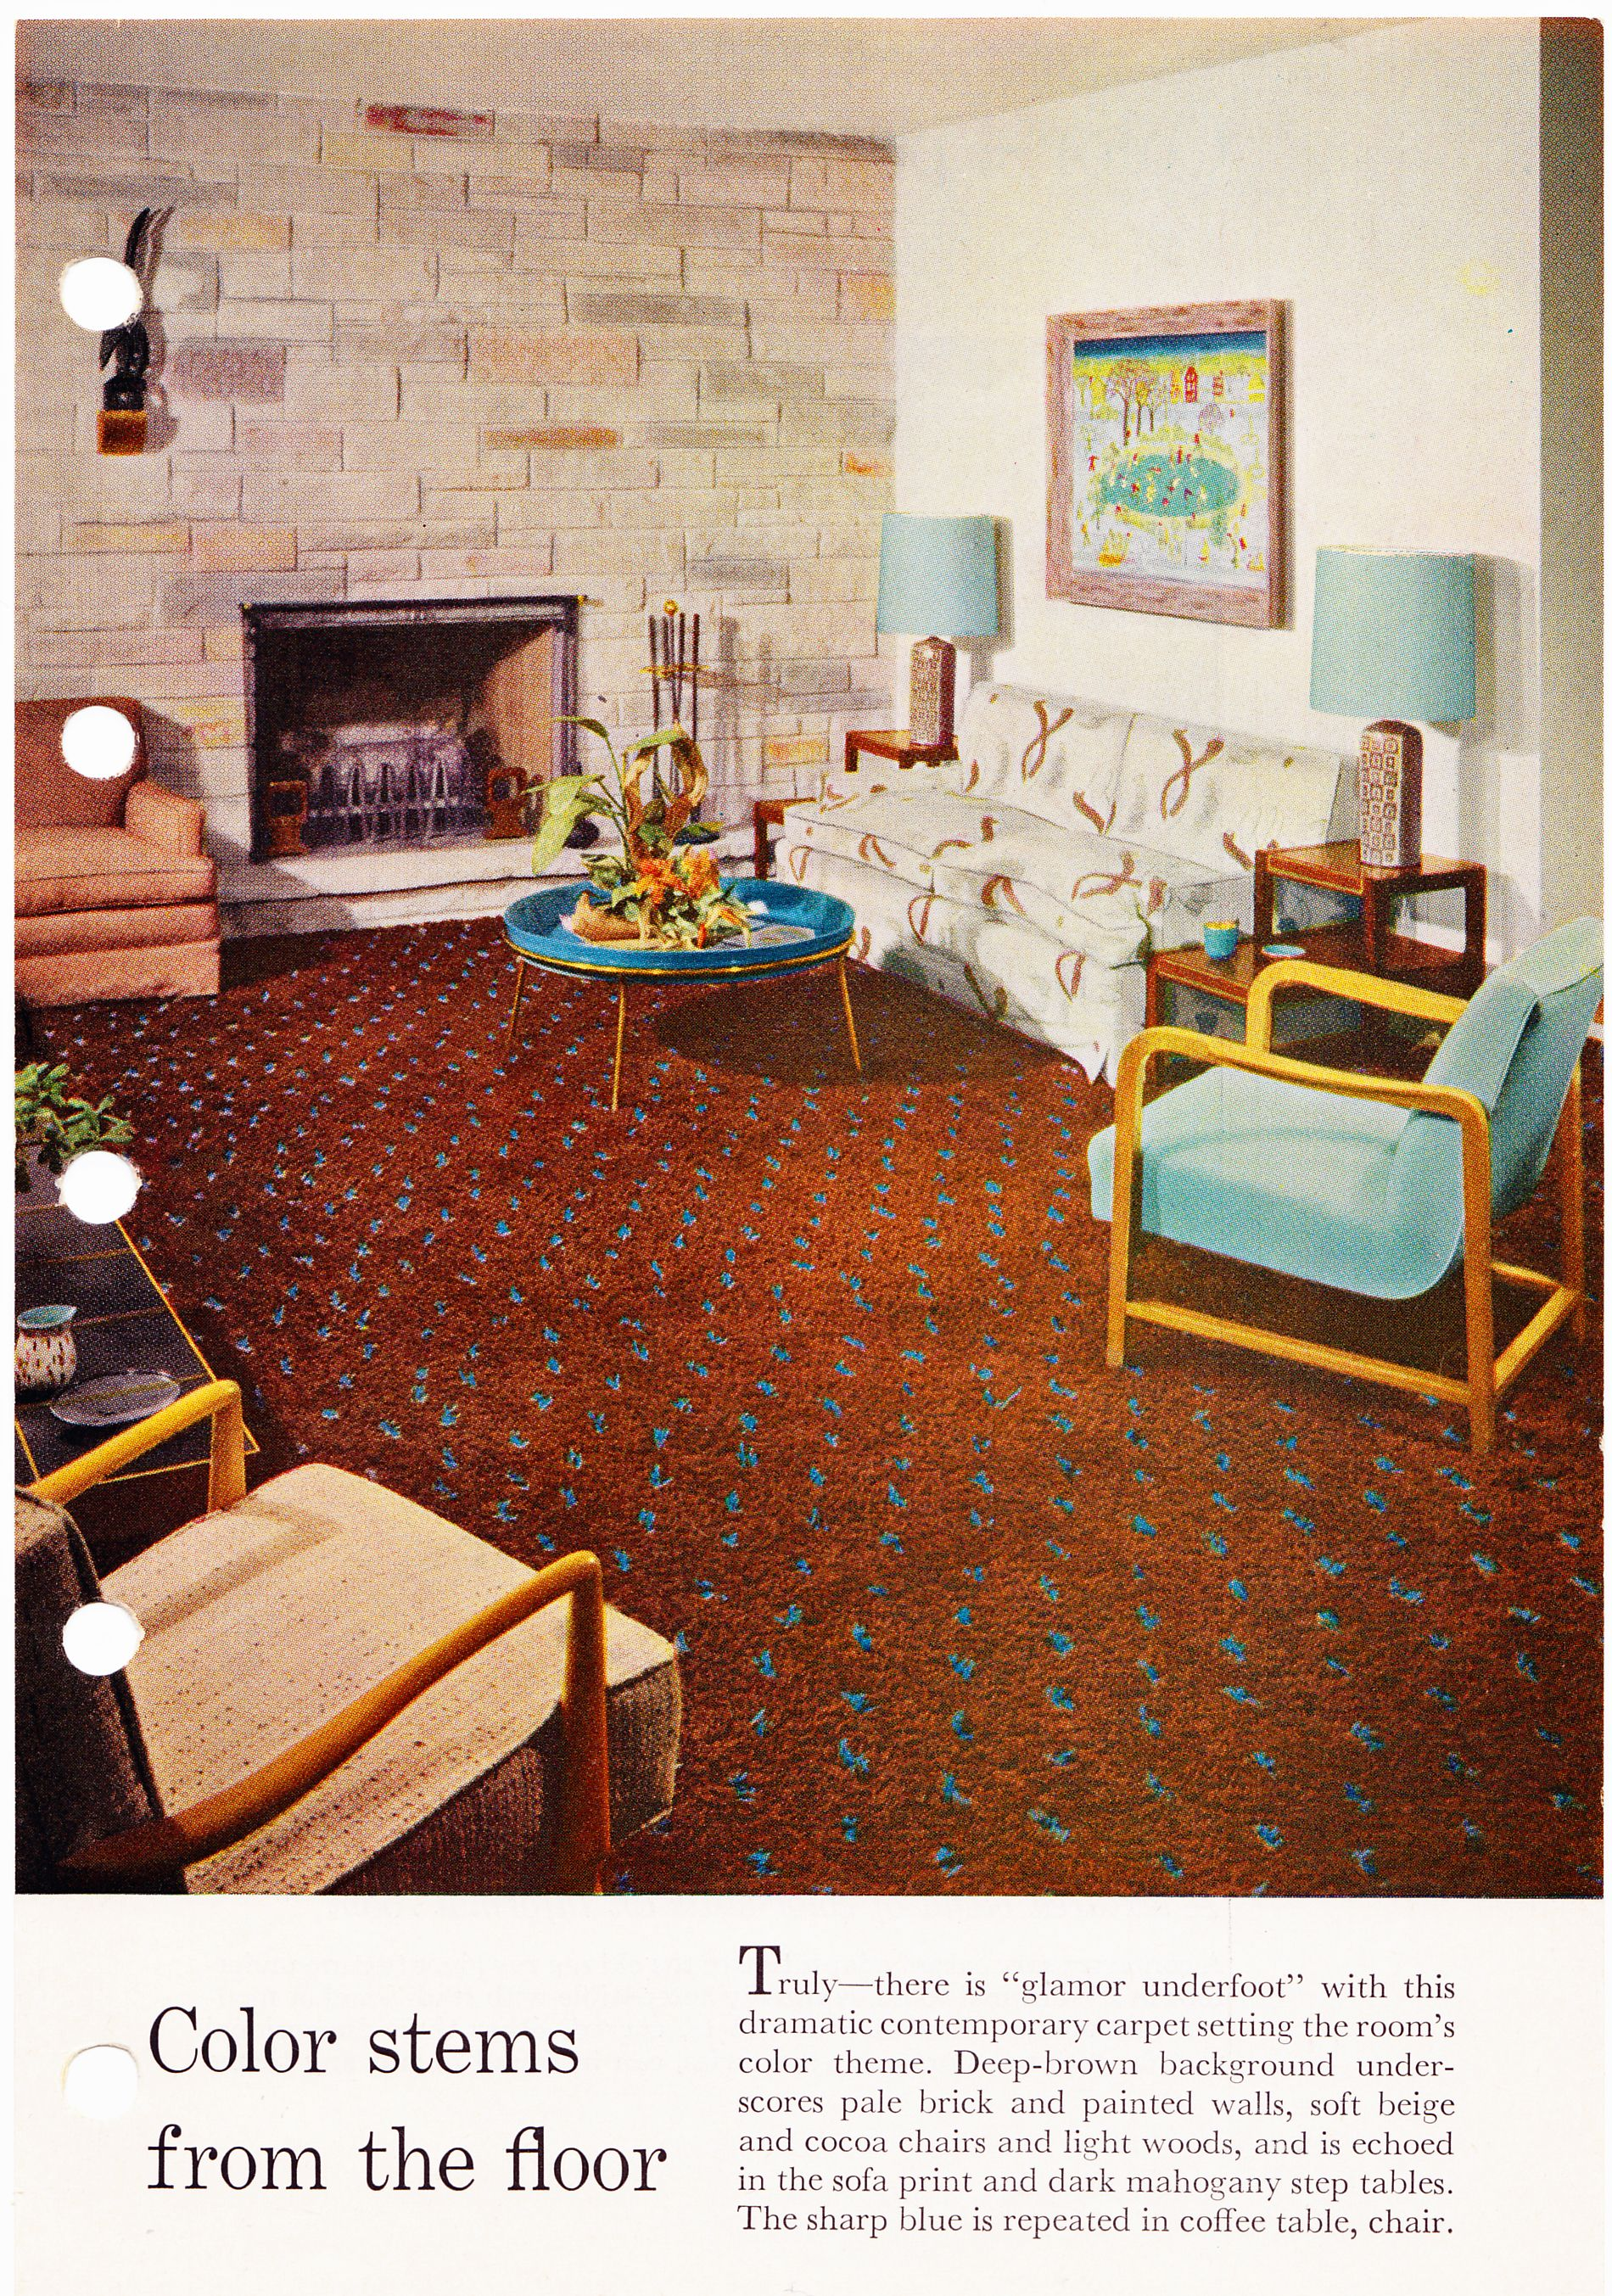 Better Homes & Gardens Decorating Book, 1956, Page 209 - This carpet ...